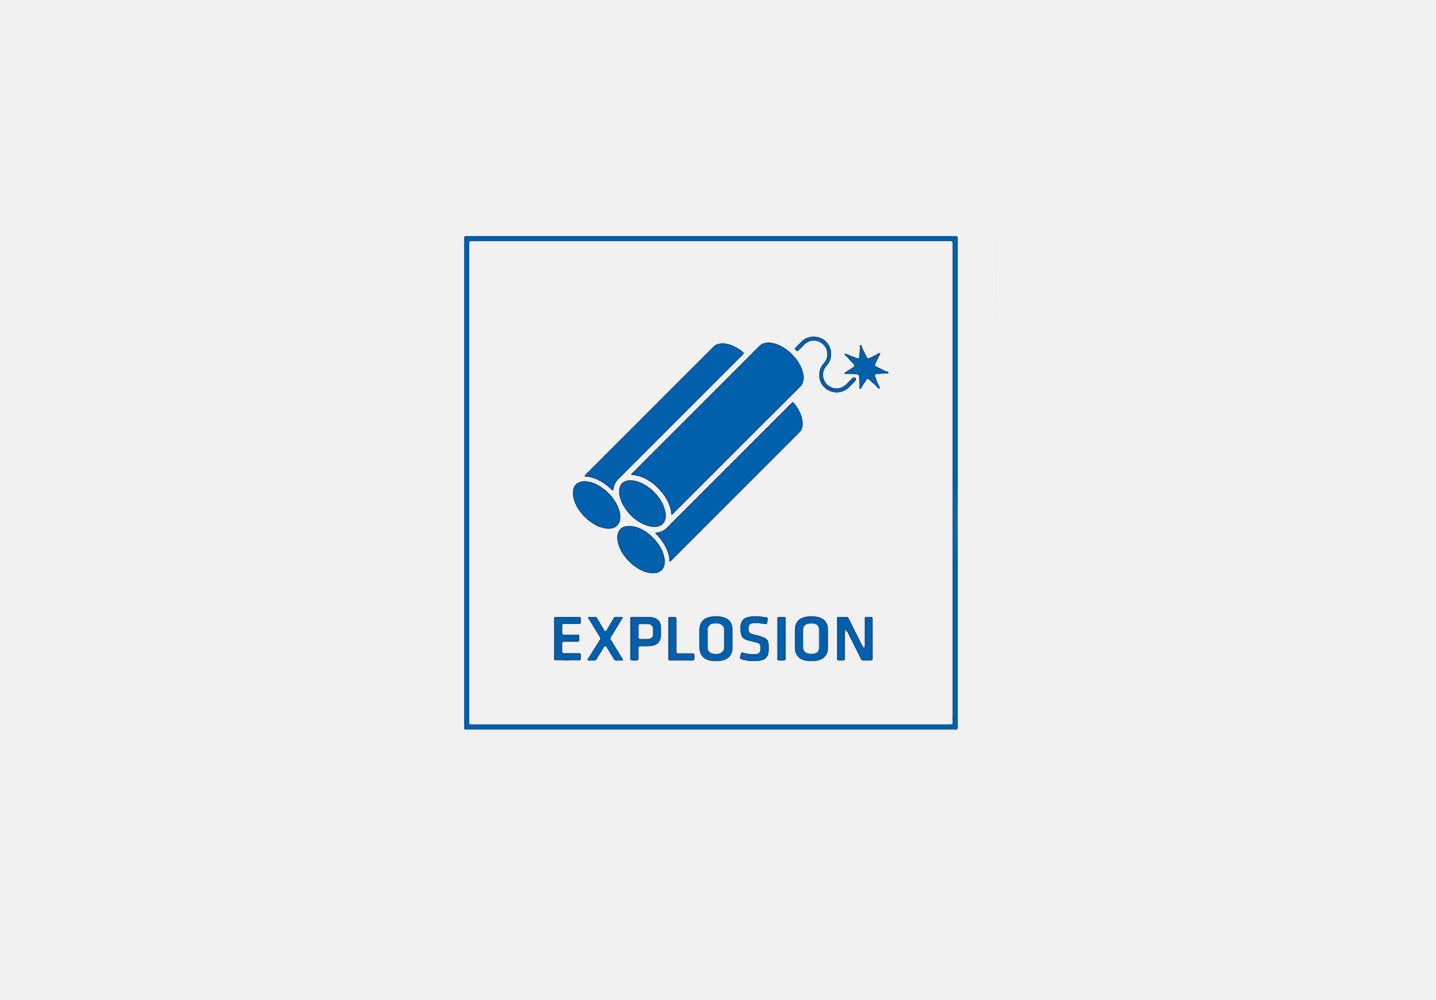 lighting effects_explosion